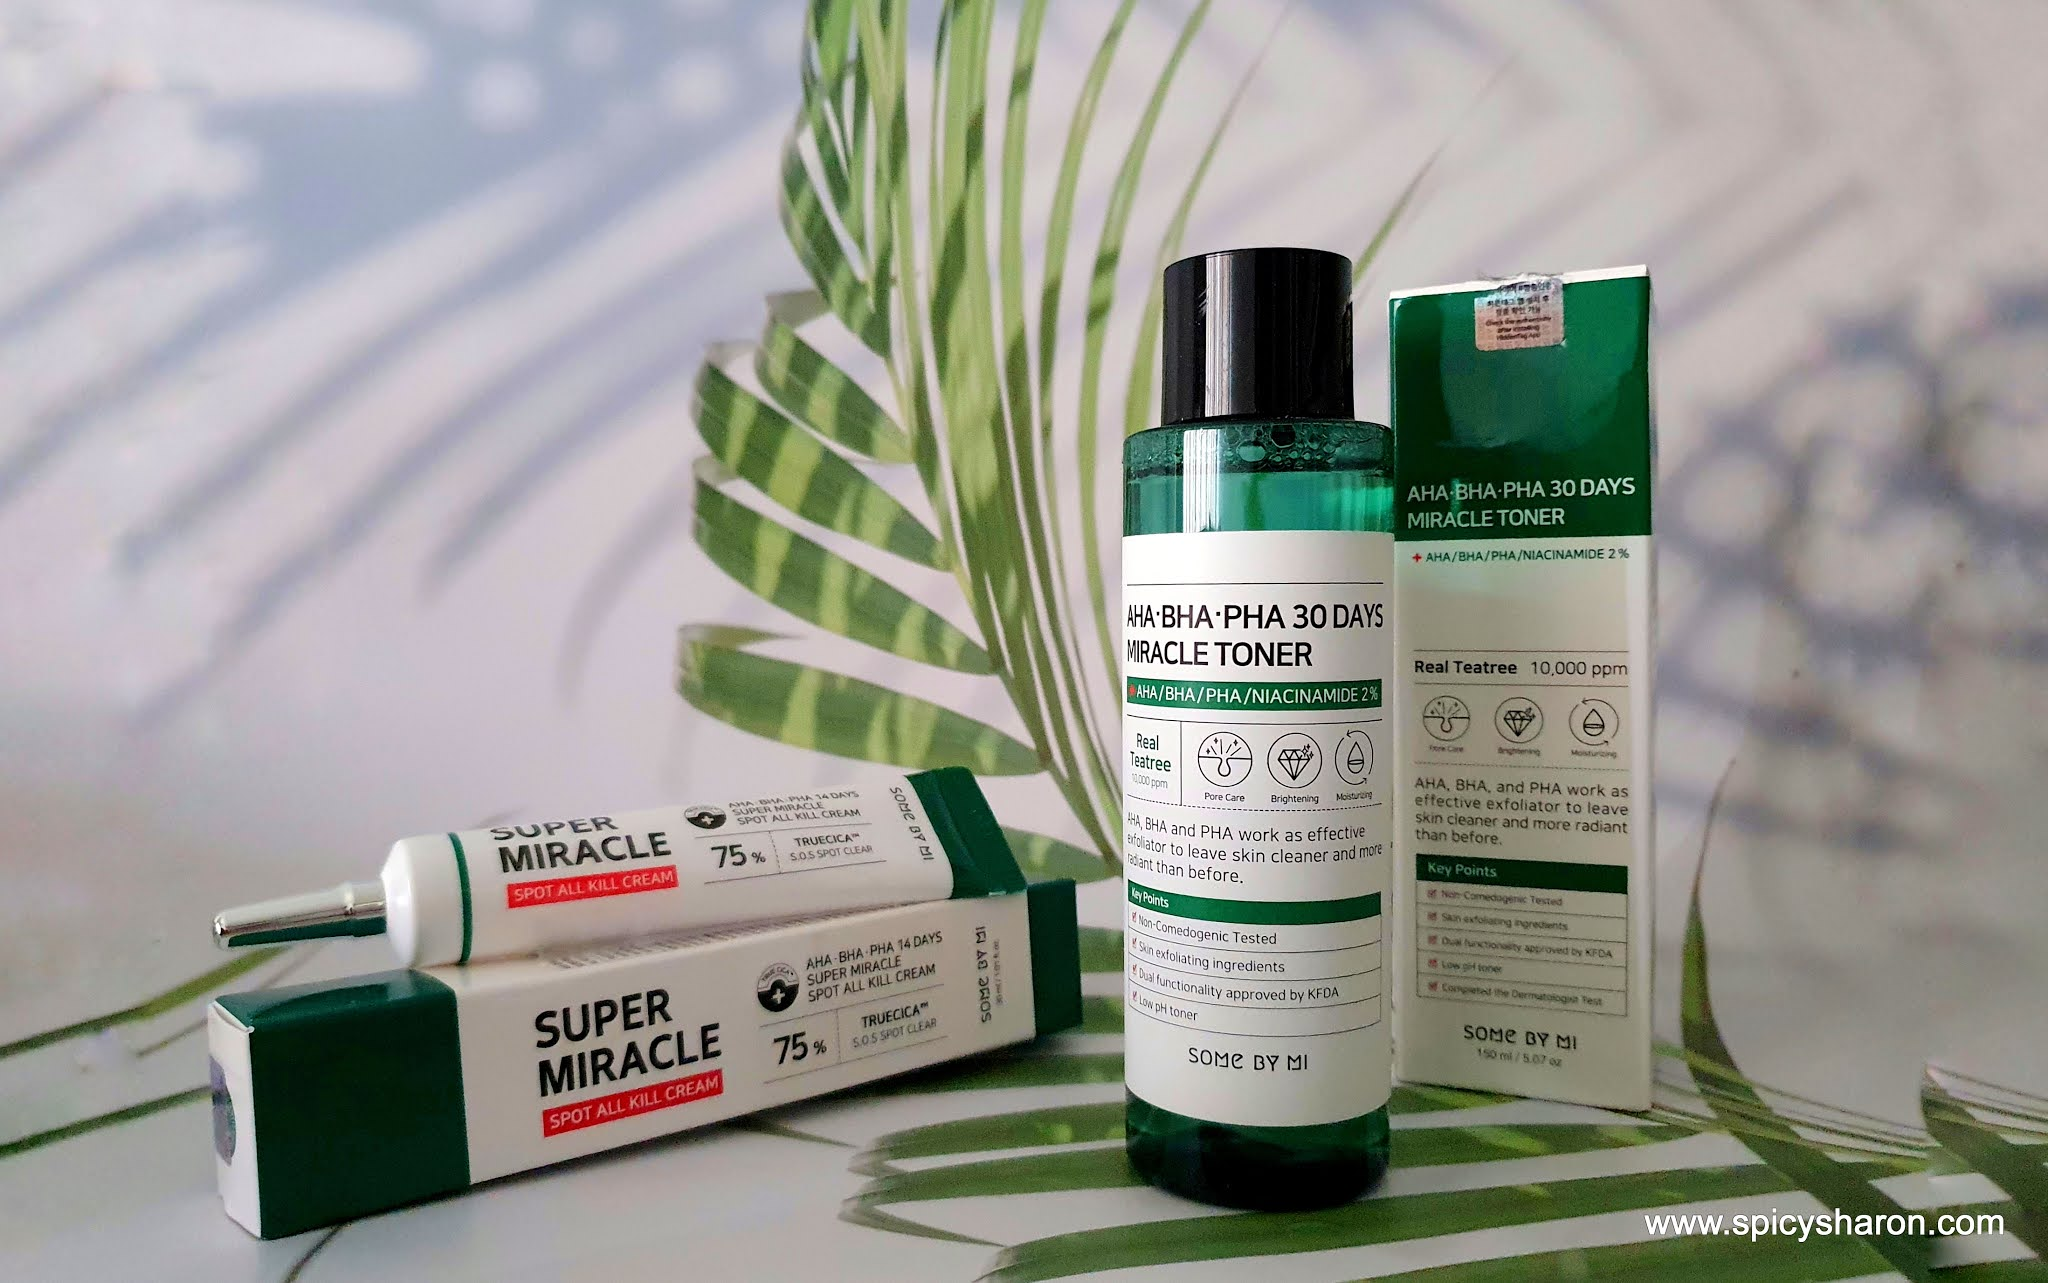 Product Review : Some By Mi Miracle Toner & Super Miracle Spot All Kill Cream